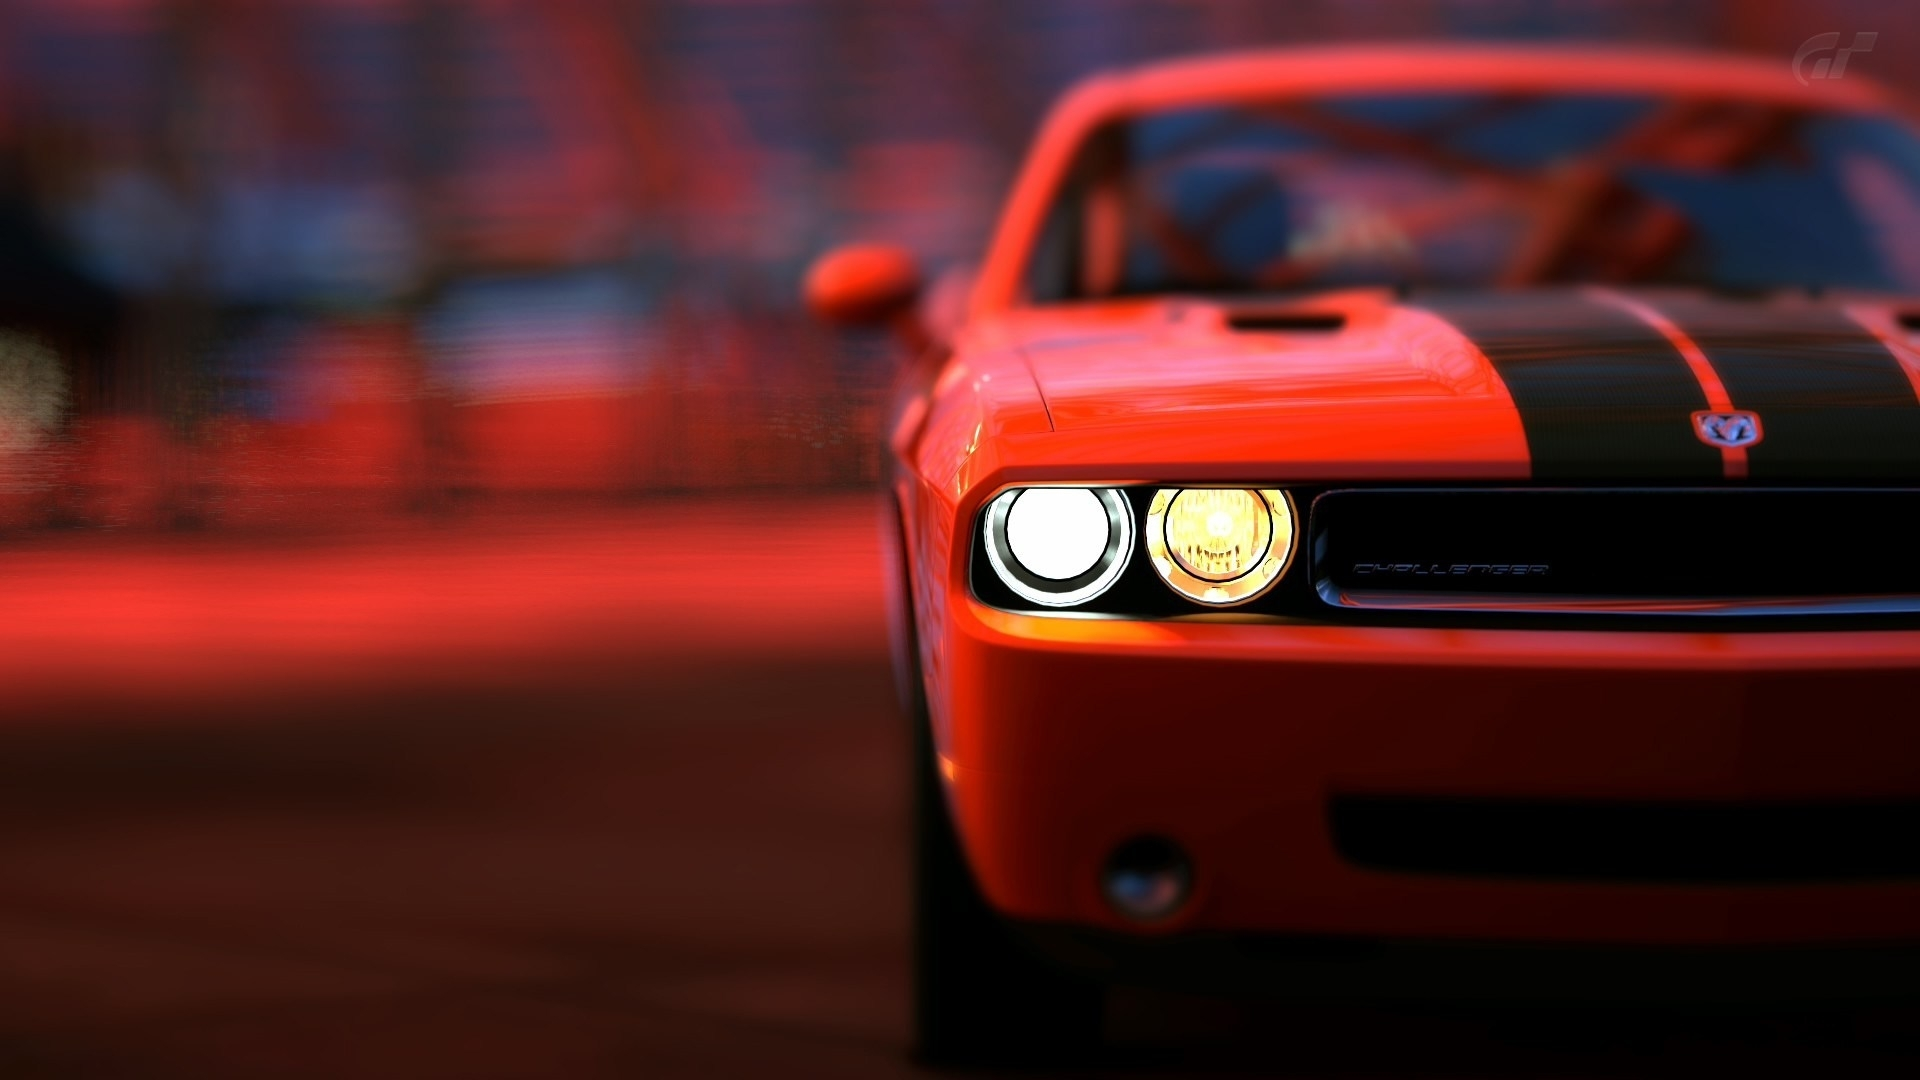 dodge challenger srt8 full hd wallpaper and background image